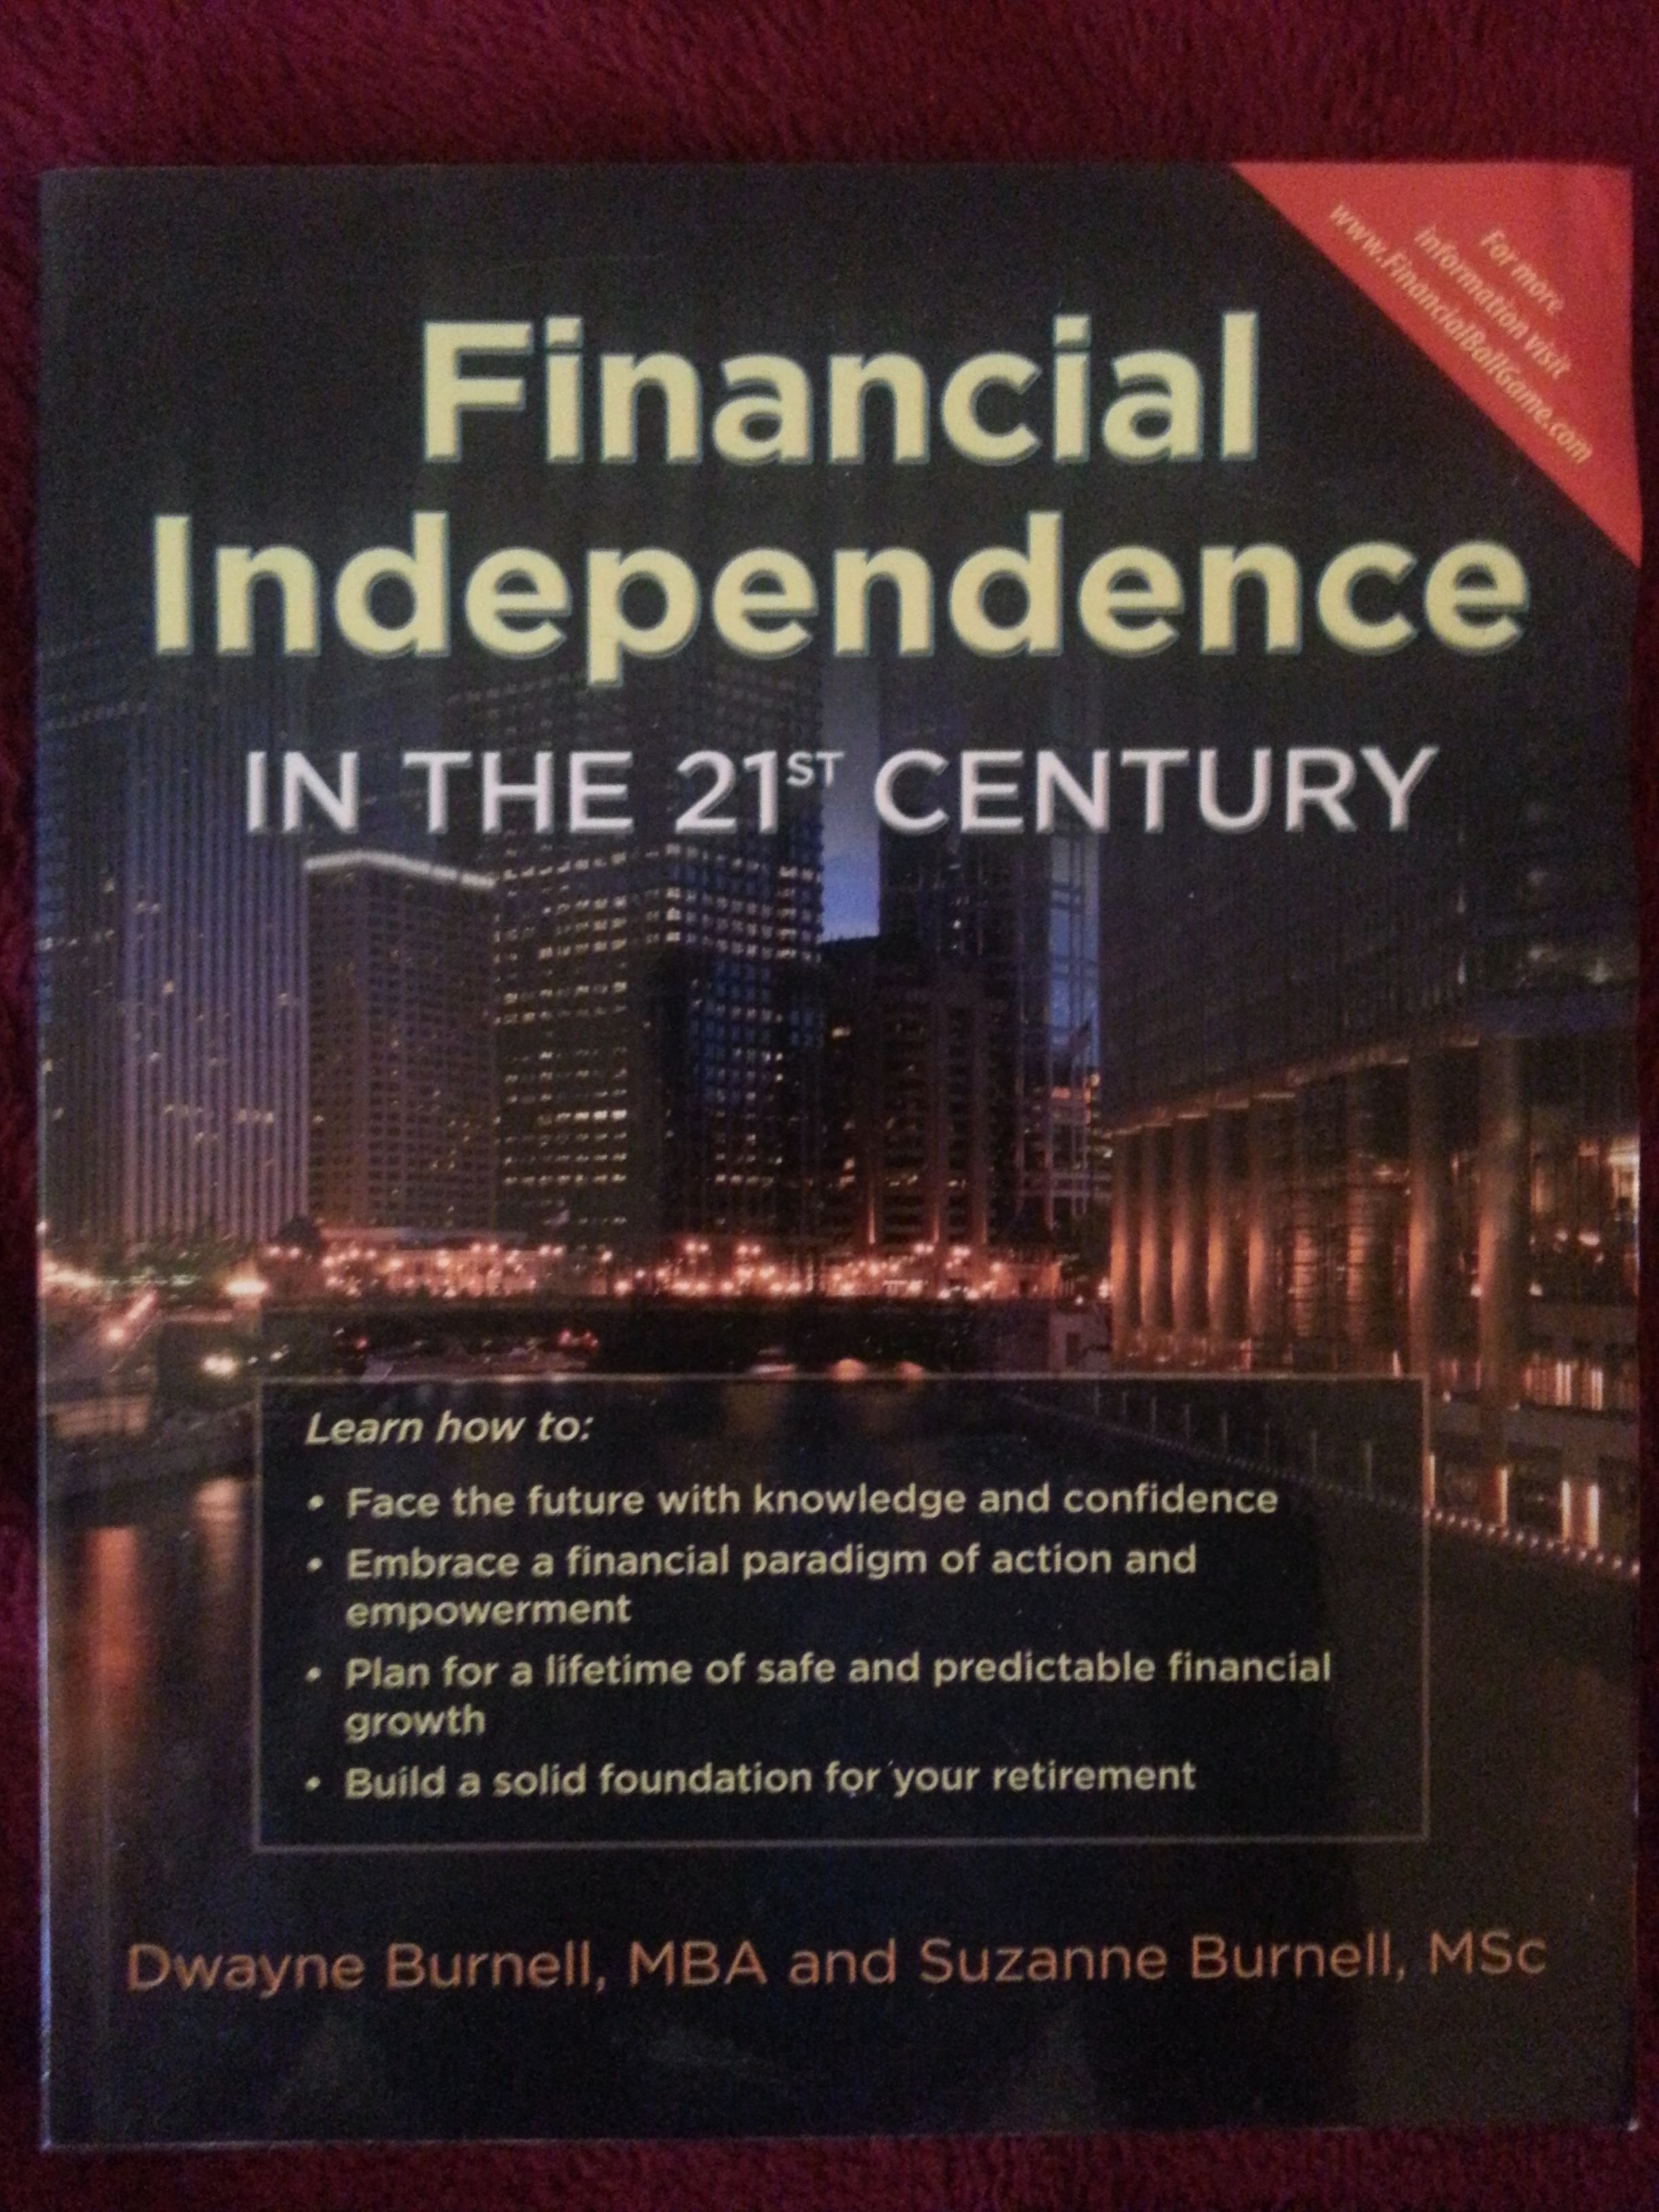 Financial Independence in the 21st Century | Infinite ...